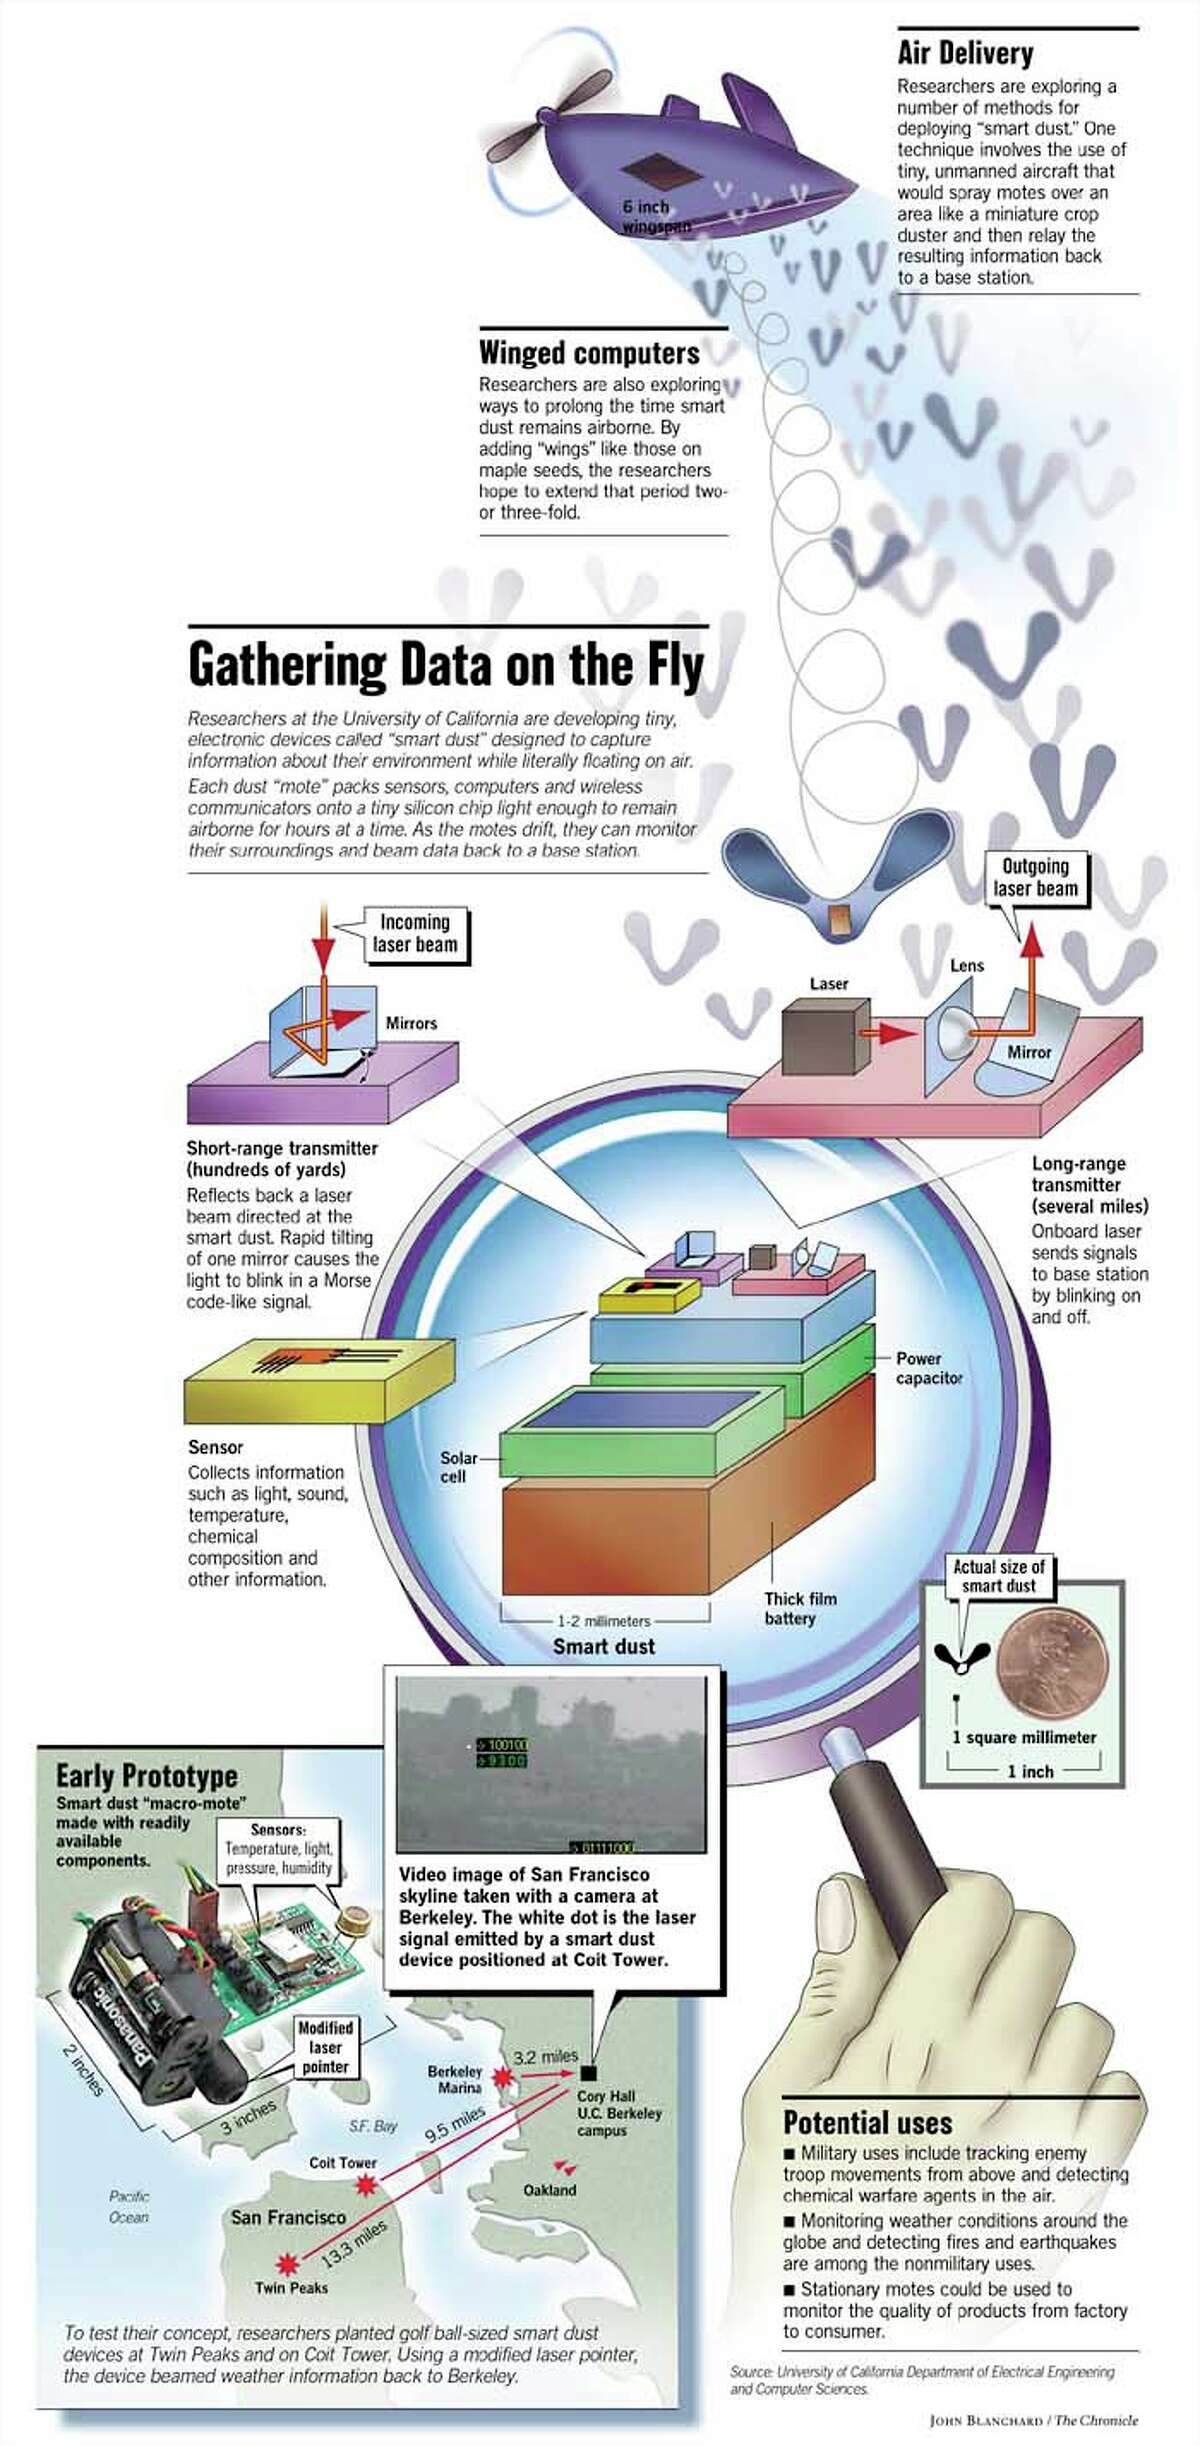 Gathering Data on the Fly. Chronicle graphic by John Blanchard